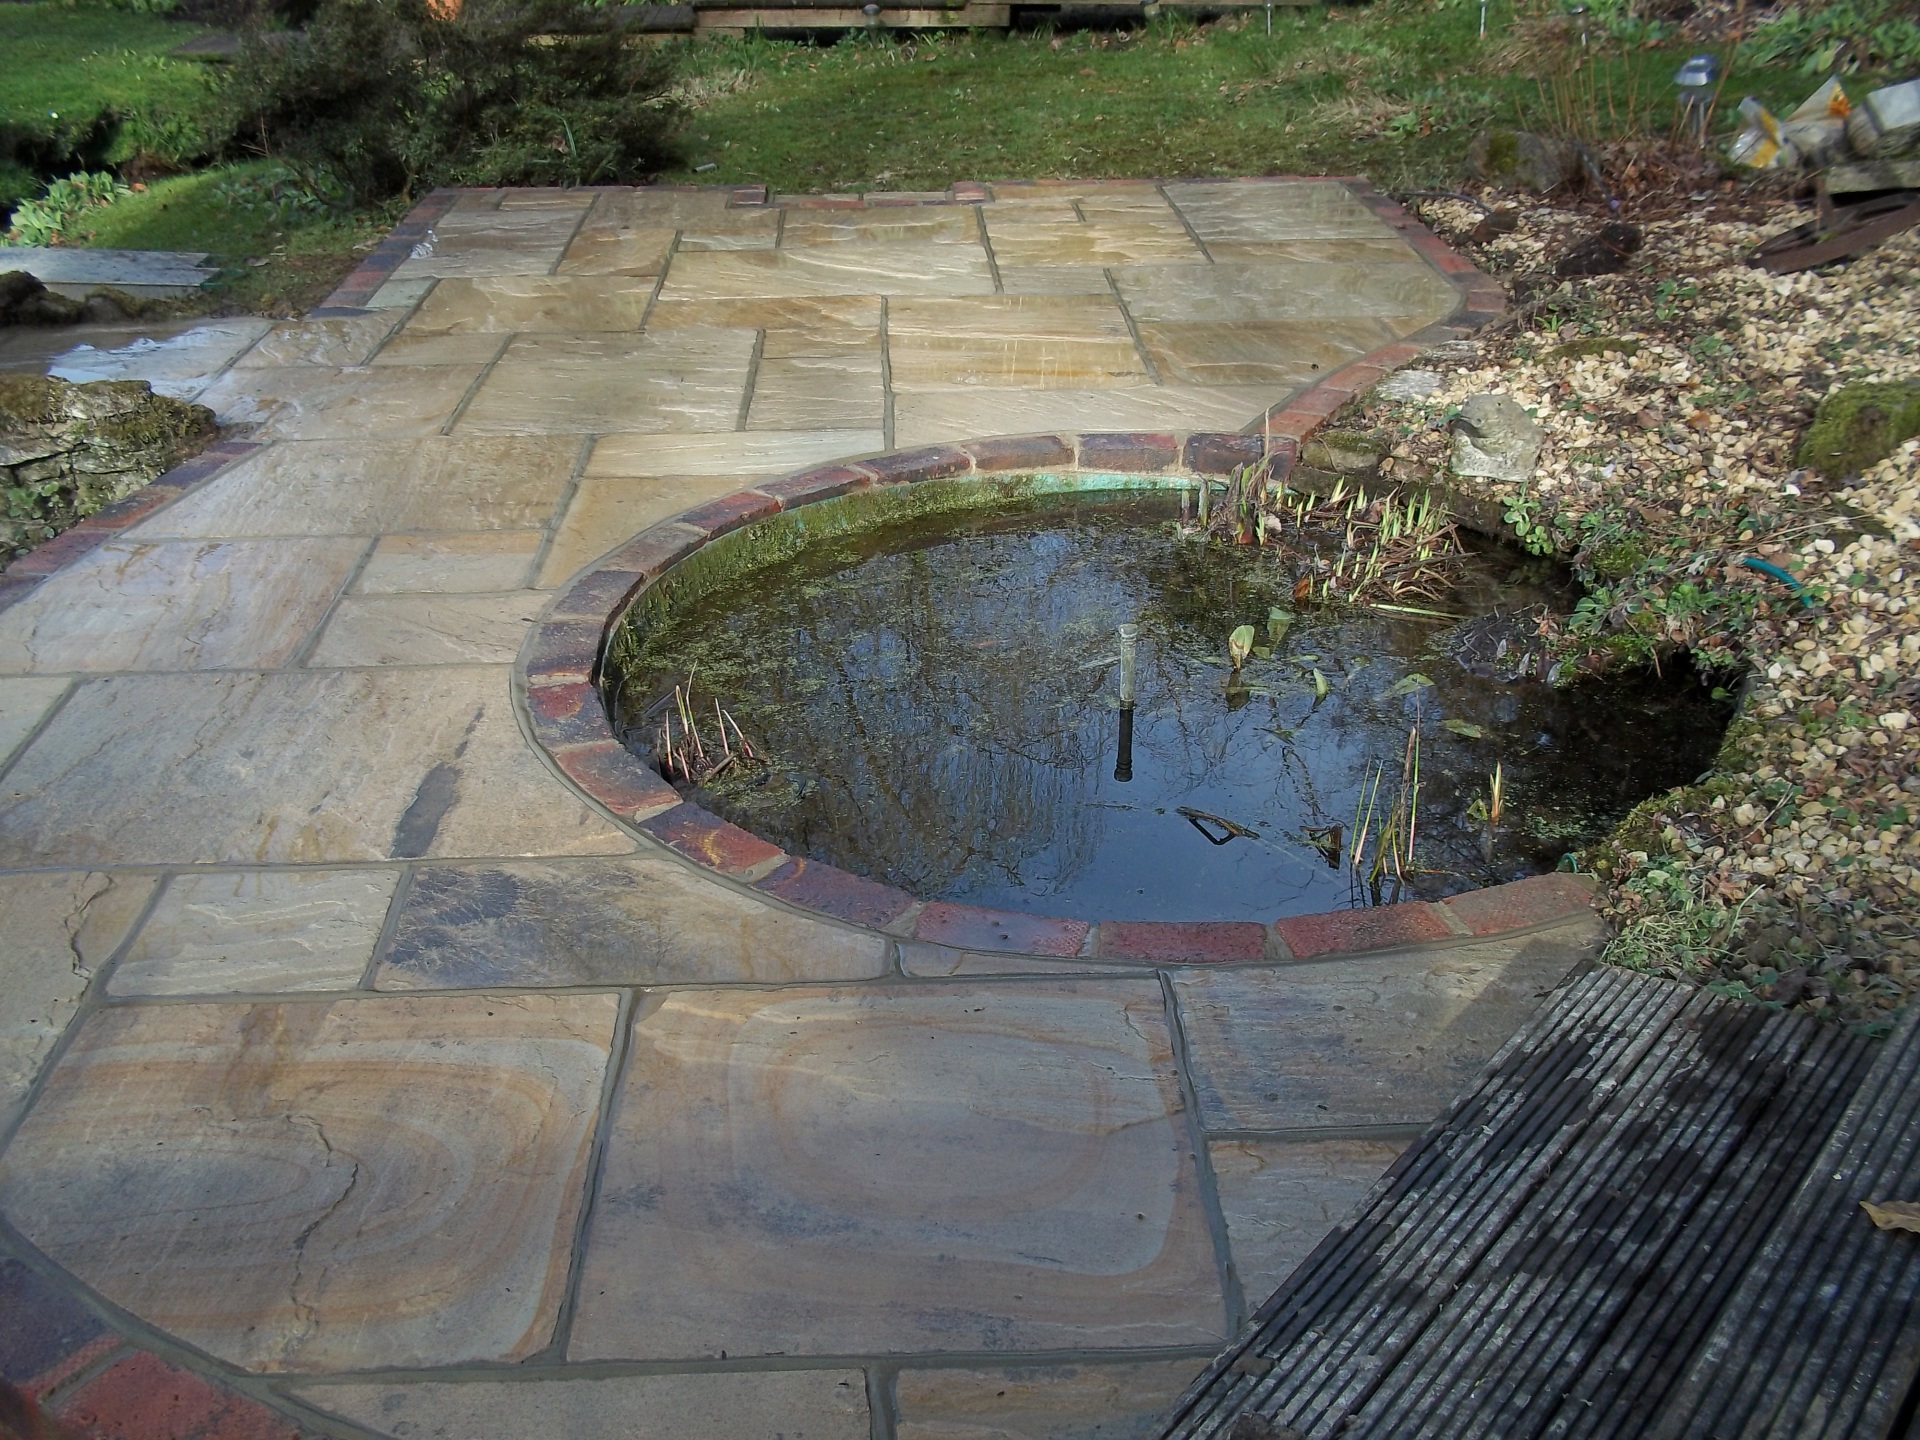 Indian sandstone patio built round fish pond.